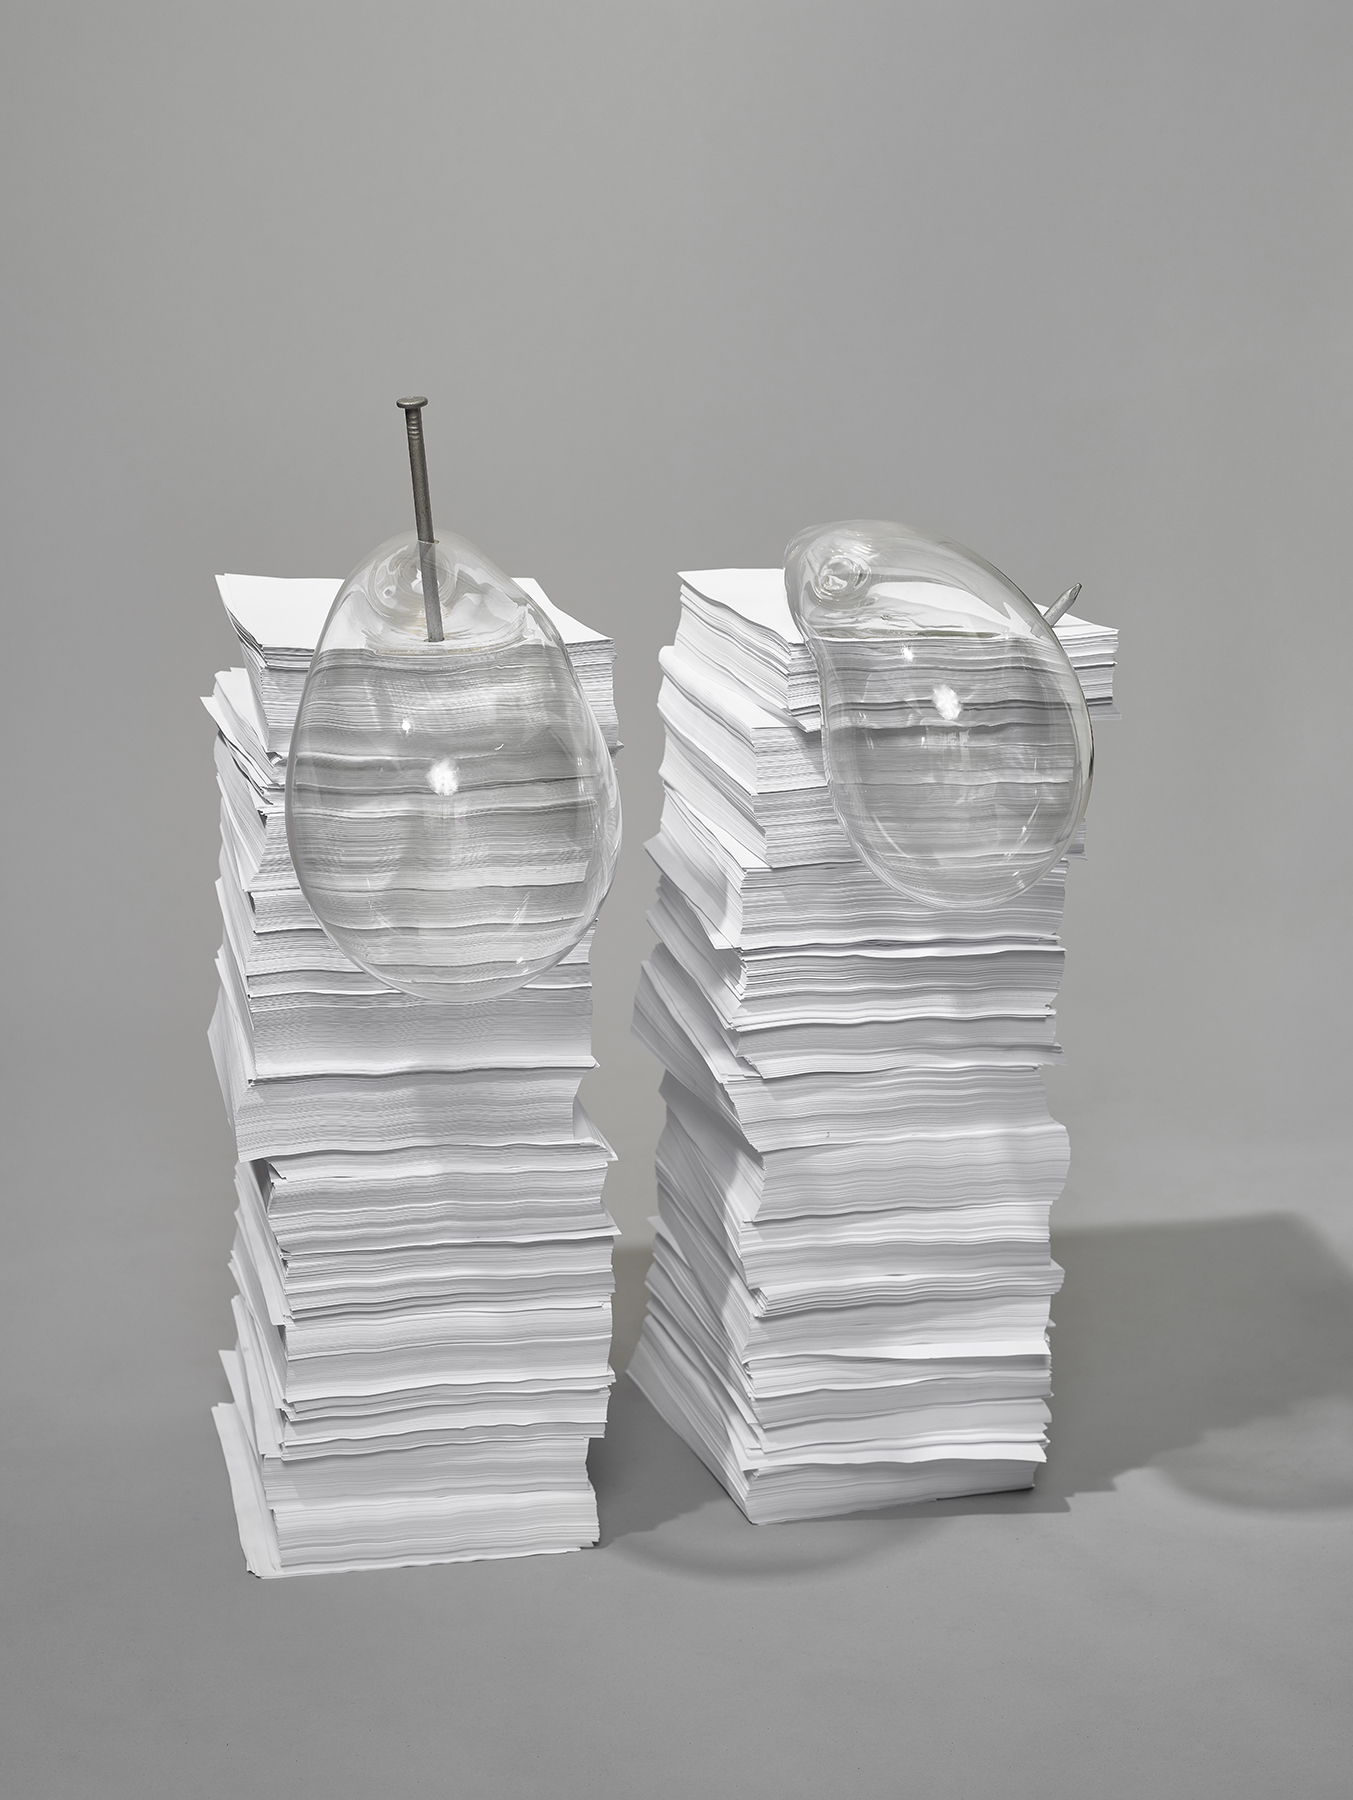 Watch out   Glass, paper & nails 36 x 20 x 16 in